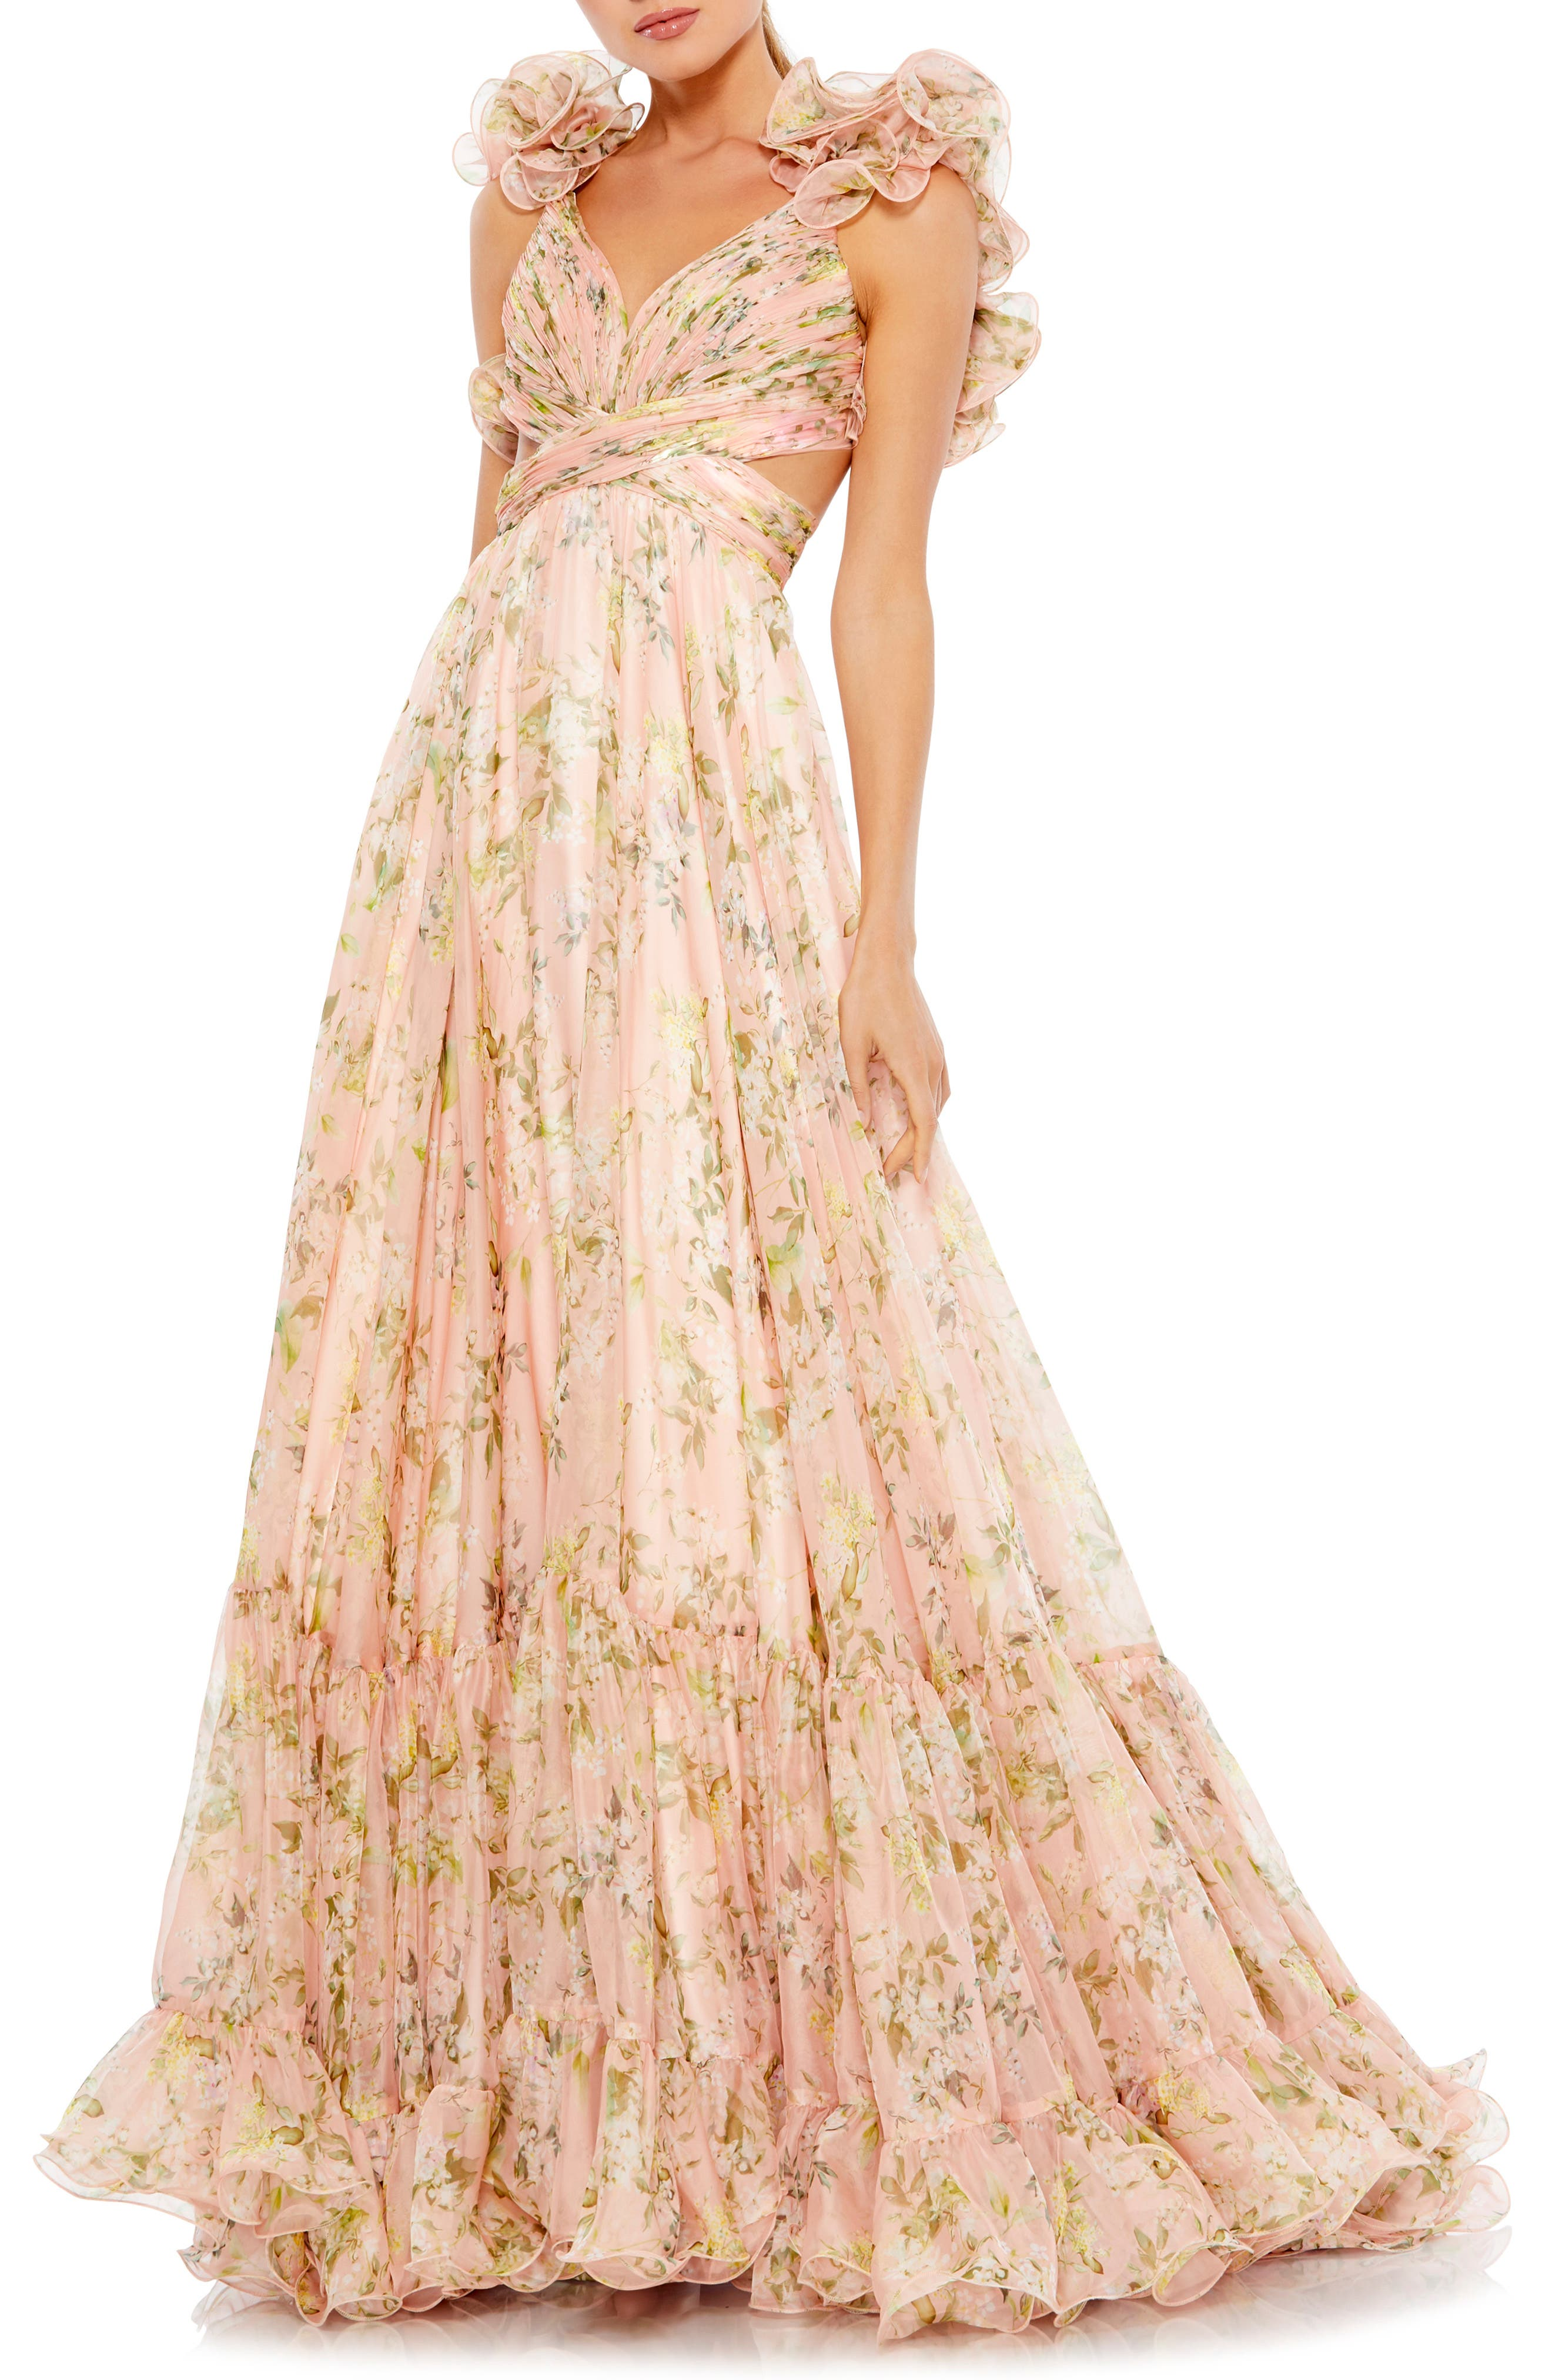 Womens A-line Ball Gown Printed Floral V-neck High Waist Evening Party Dress Hot